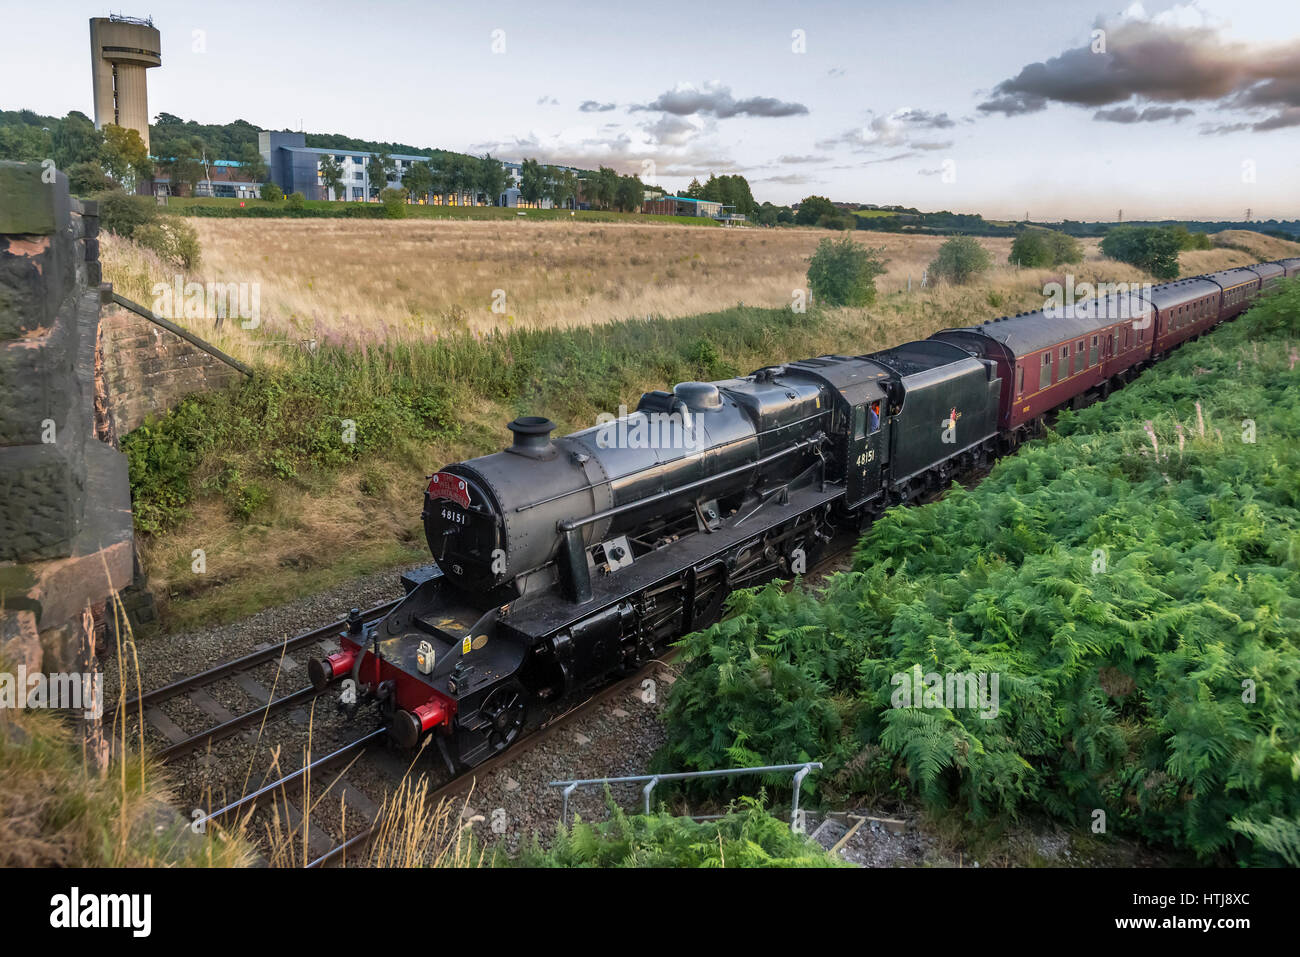 48151 Guage O Guild steam locomotive passing the Rutherford Daresbury nuclear physics laboratory at Daresbury near Stock Photo